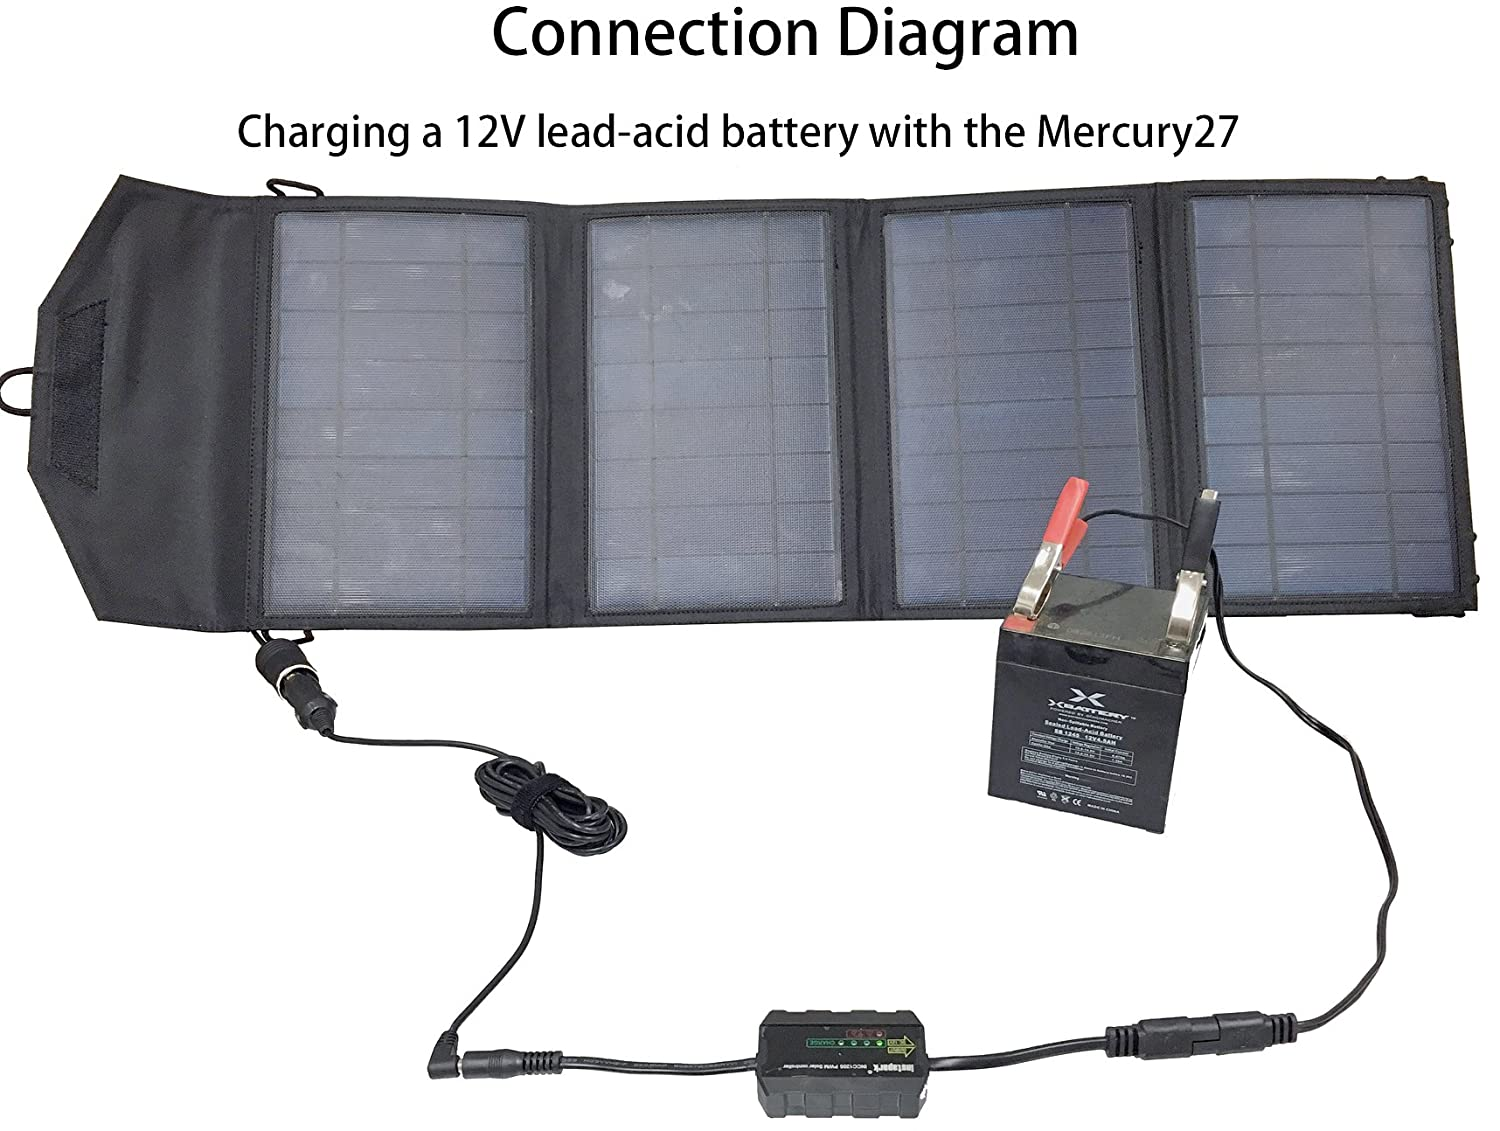 Instapark Mercury27 27 Watt Compact Foldable Solar Powered Battery 12v Dual Usb Port Wiring Diagram Charger With Output For